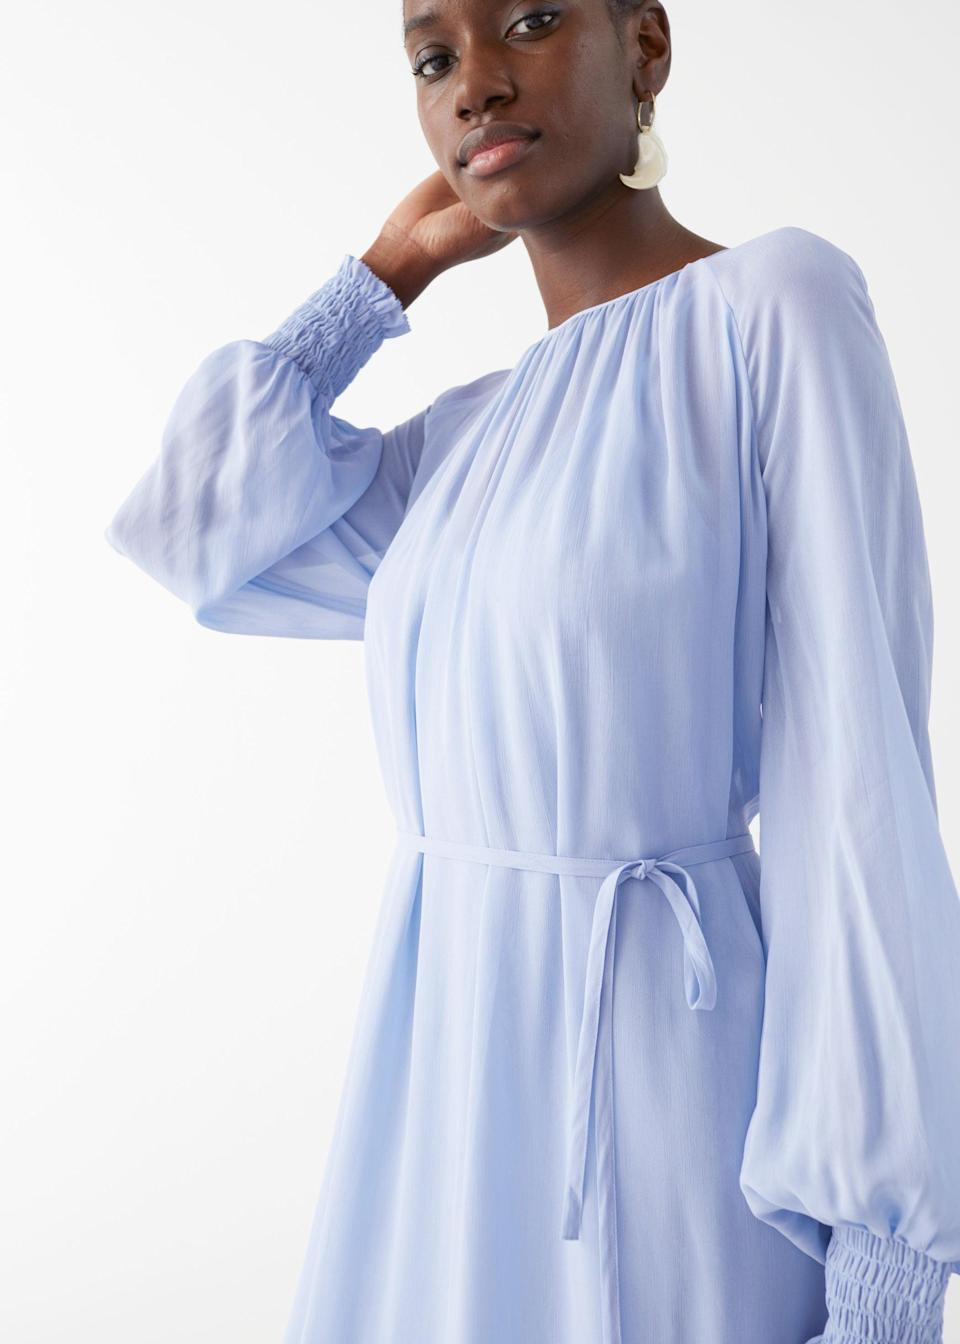 """<br> <br> <strong>& Other Stories</strong> Balloon Sleeve Midi Dress, $, available at <a href=""""https://go.skimresources.com/?id=30283X879131&url=https%3A%2F%2Fwww.stories.com%2Fen_usd%2Fclothing%2Fdresses%2Fmidi-dresses%2Fproduct.balloon-sleeve-midi-dress-blue.0899539003.html"""" rel=""""nofollow noopener"""" target=""""_blank"""" data-ylk=""""slk:& Other Stories"""" class=""""link rapid-noclick-resp"""">& Other Stories</a>"""